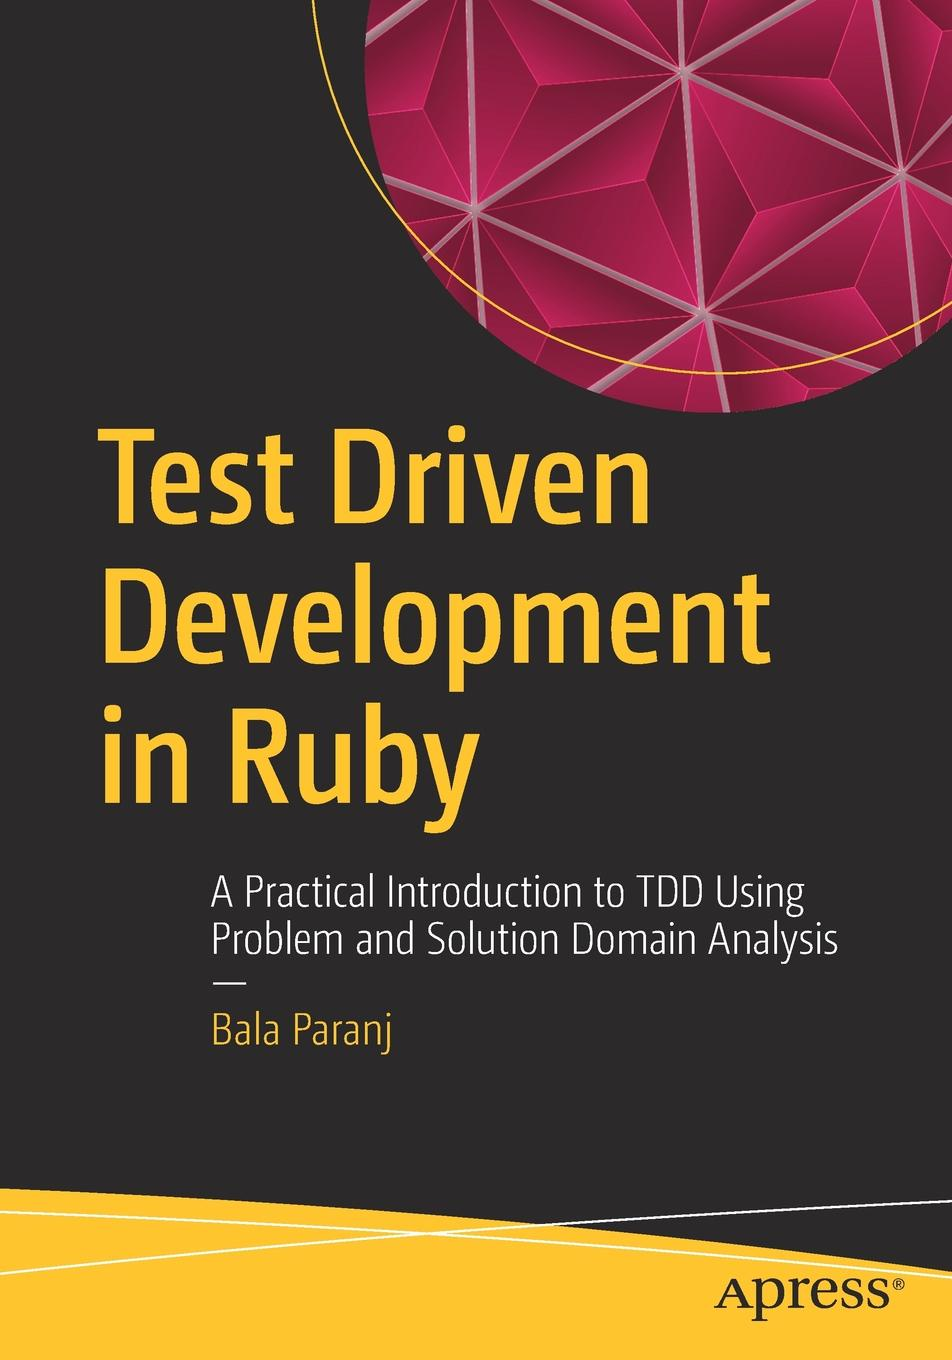 Фото - Bala Paranj Test Driven Development in Ruby. A Practical Introduction to TDD Using Problem and Solution Domain Analysis paul fletcher language development and language impairment a problem based introduction